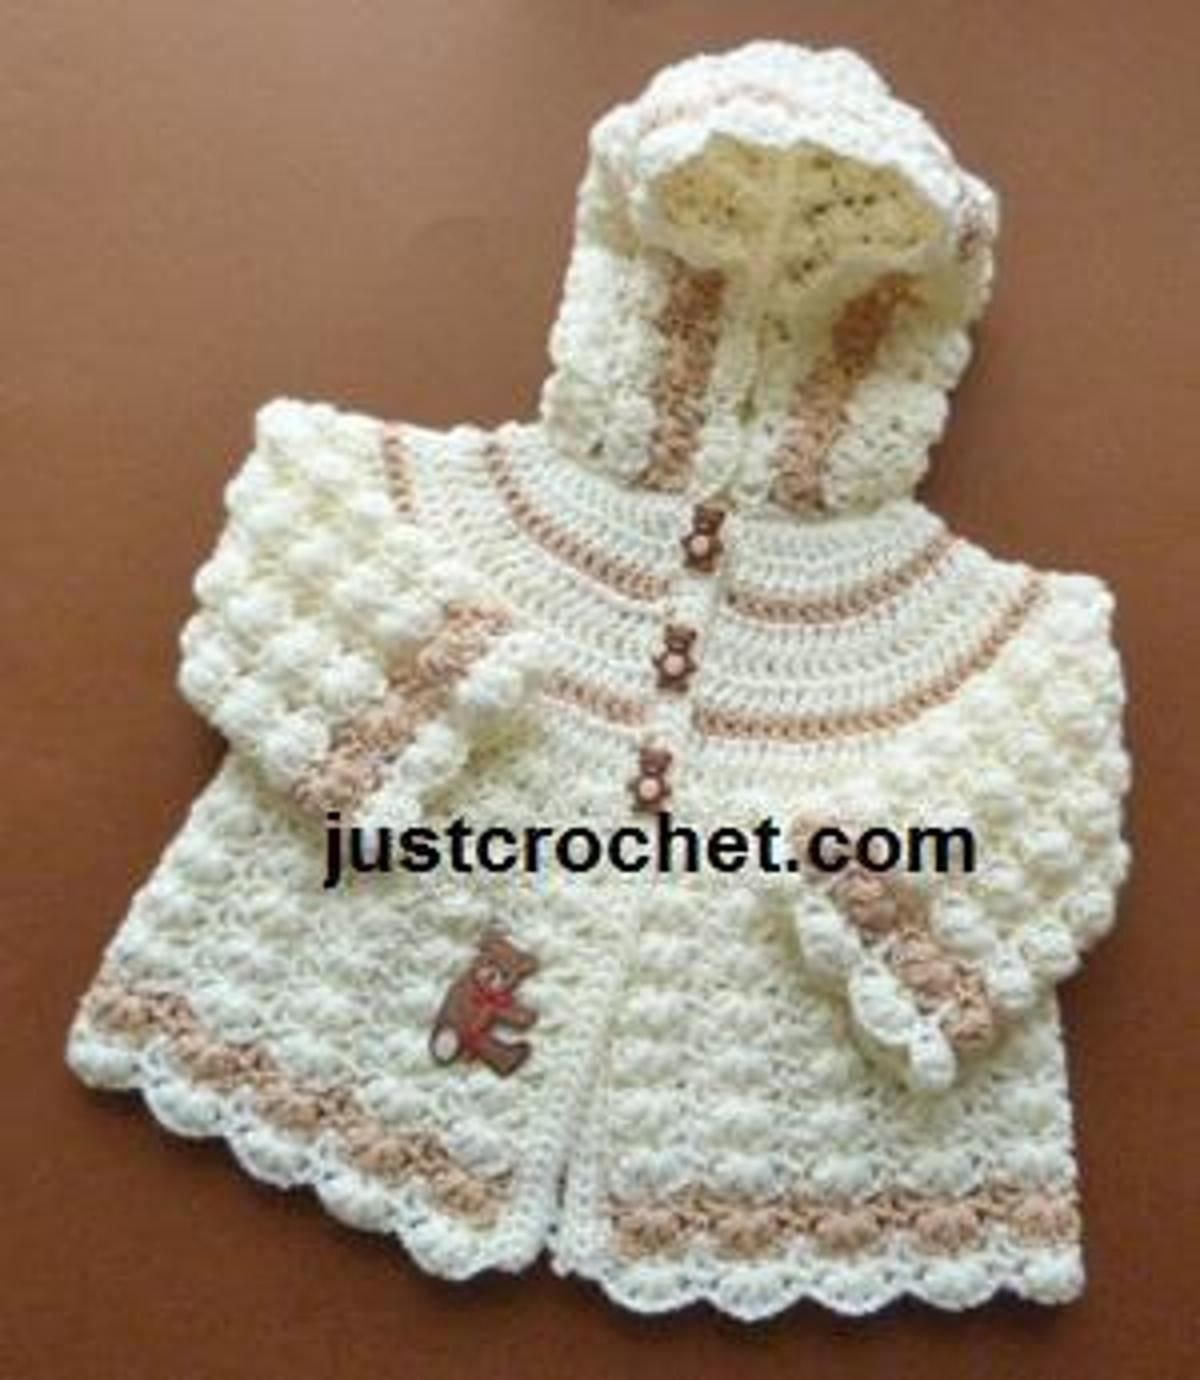 FJC99-Hooded Jacket baby crochet pattern | Craftsy | BABY Clothes ...